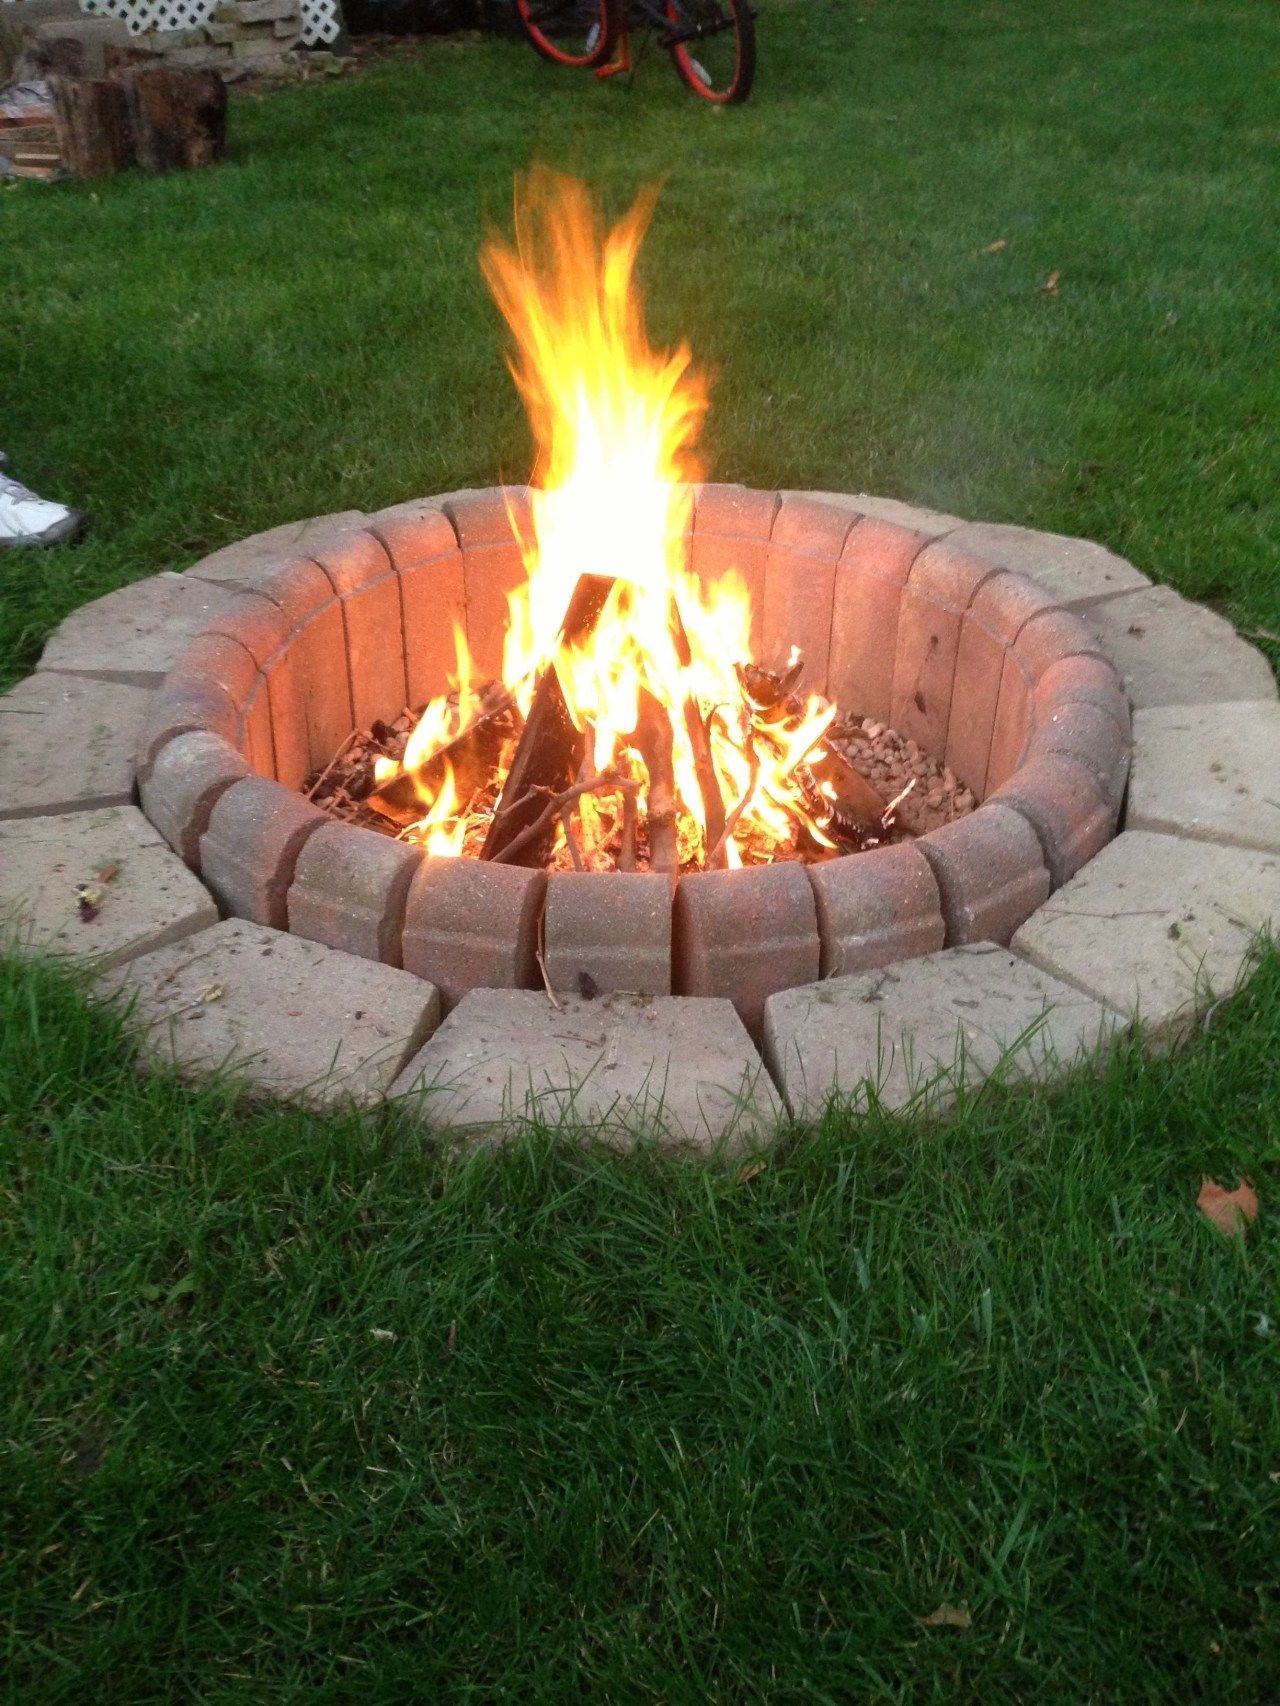 64 Diy Small Firepit Ideas For Outdoor To Wram Family With Images